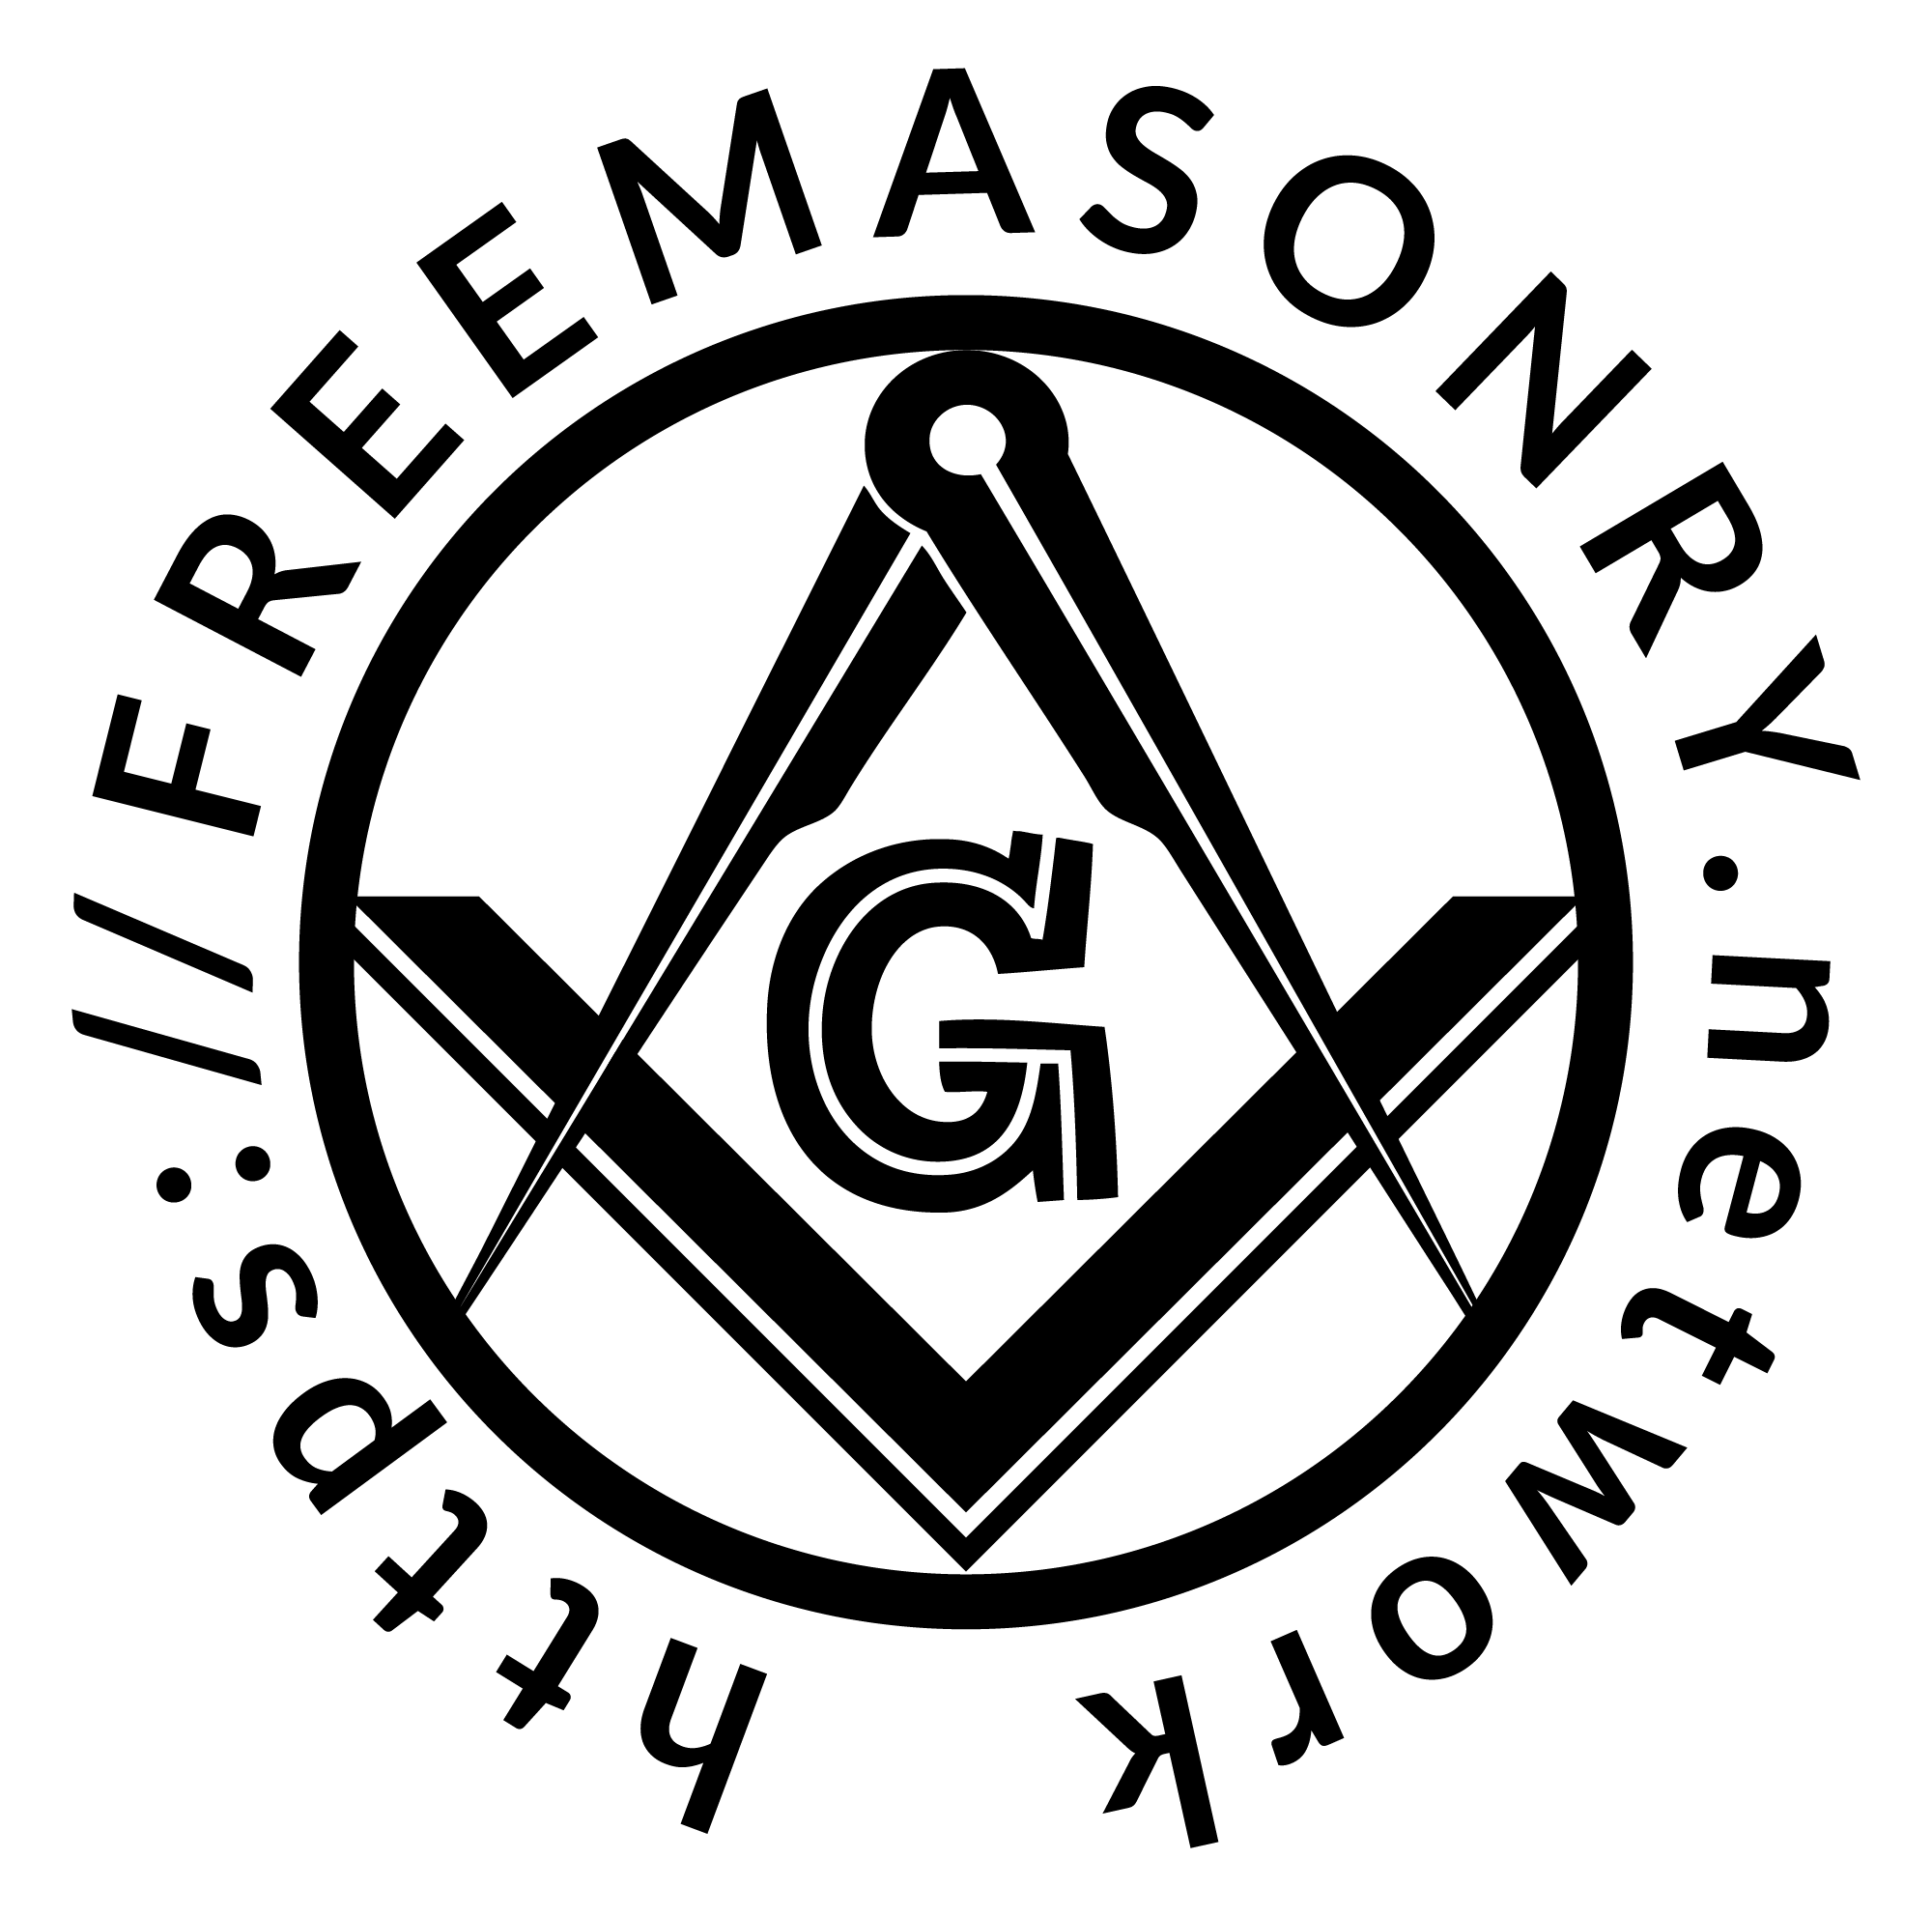 MASONIC WATCHES AND CLOCKS